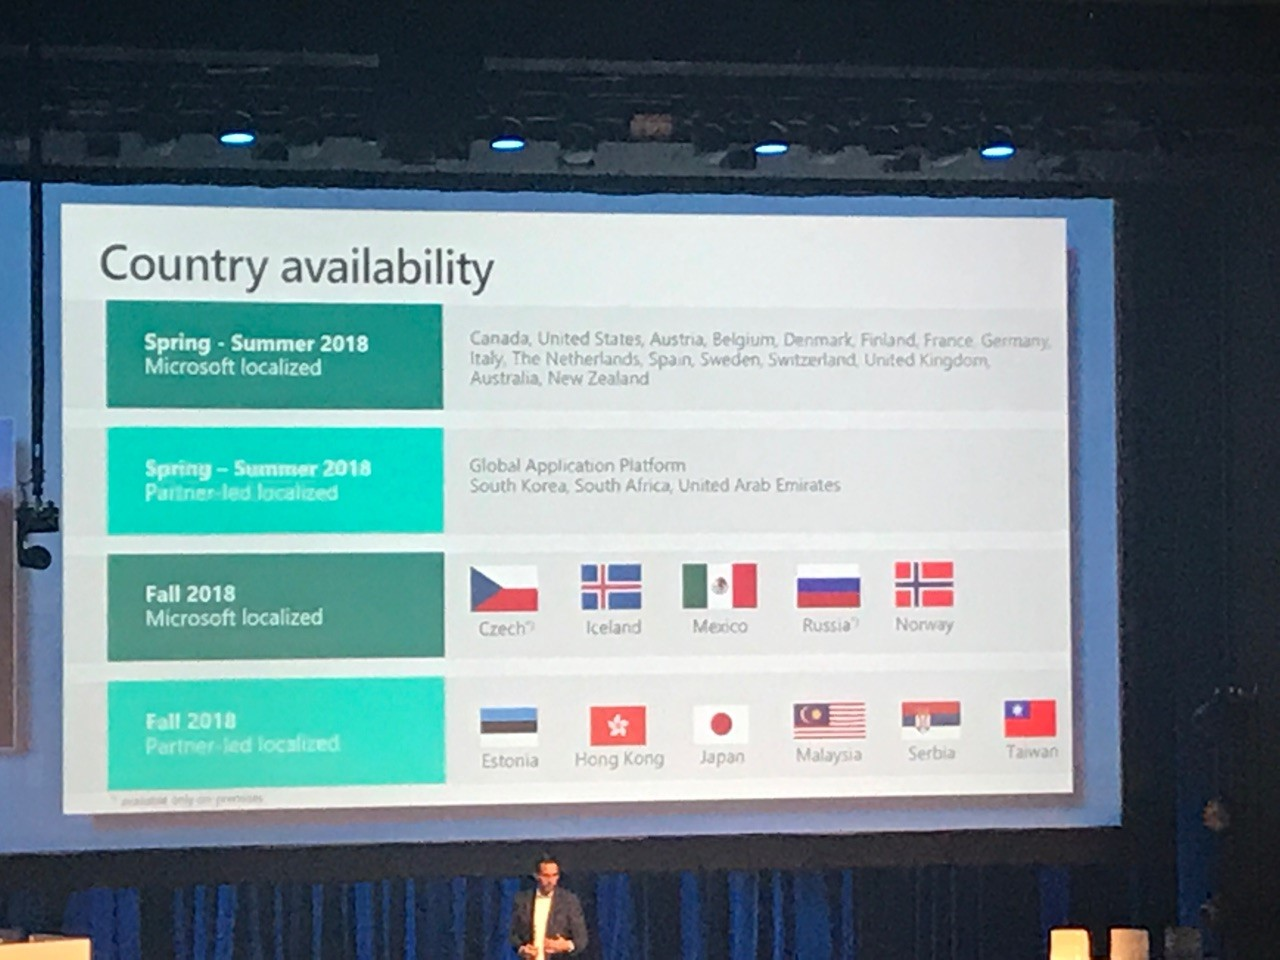 Microsoft Dynamics 365 Business Central country availability